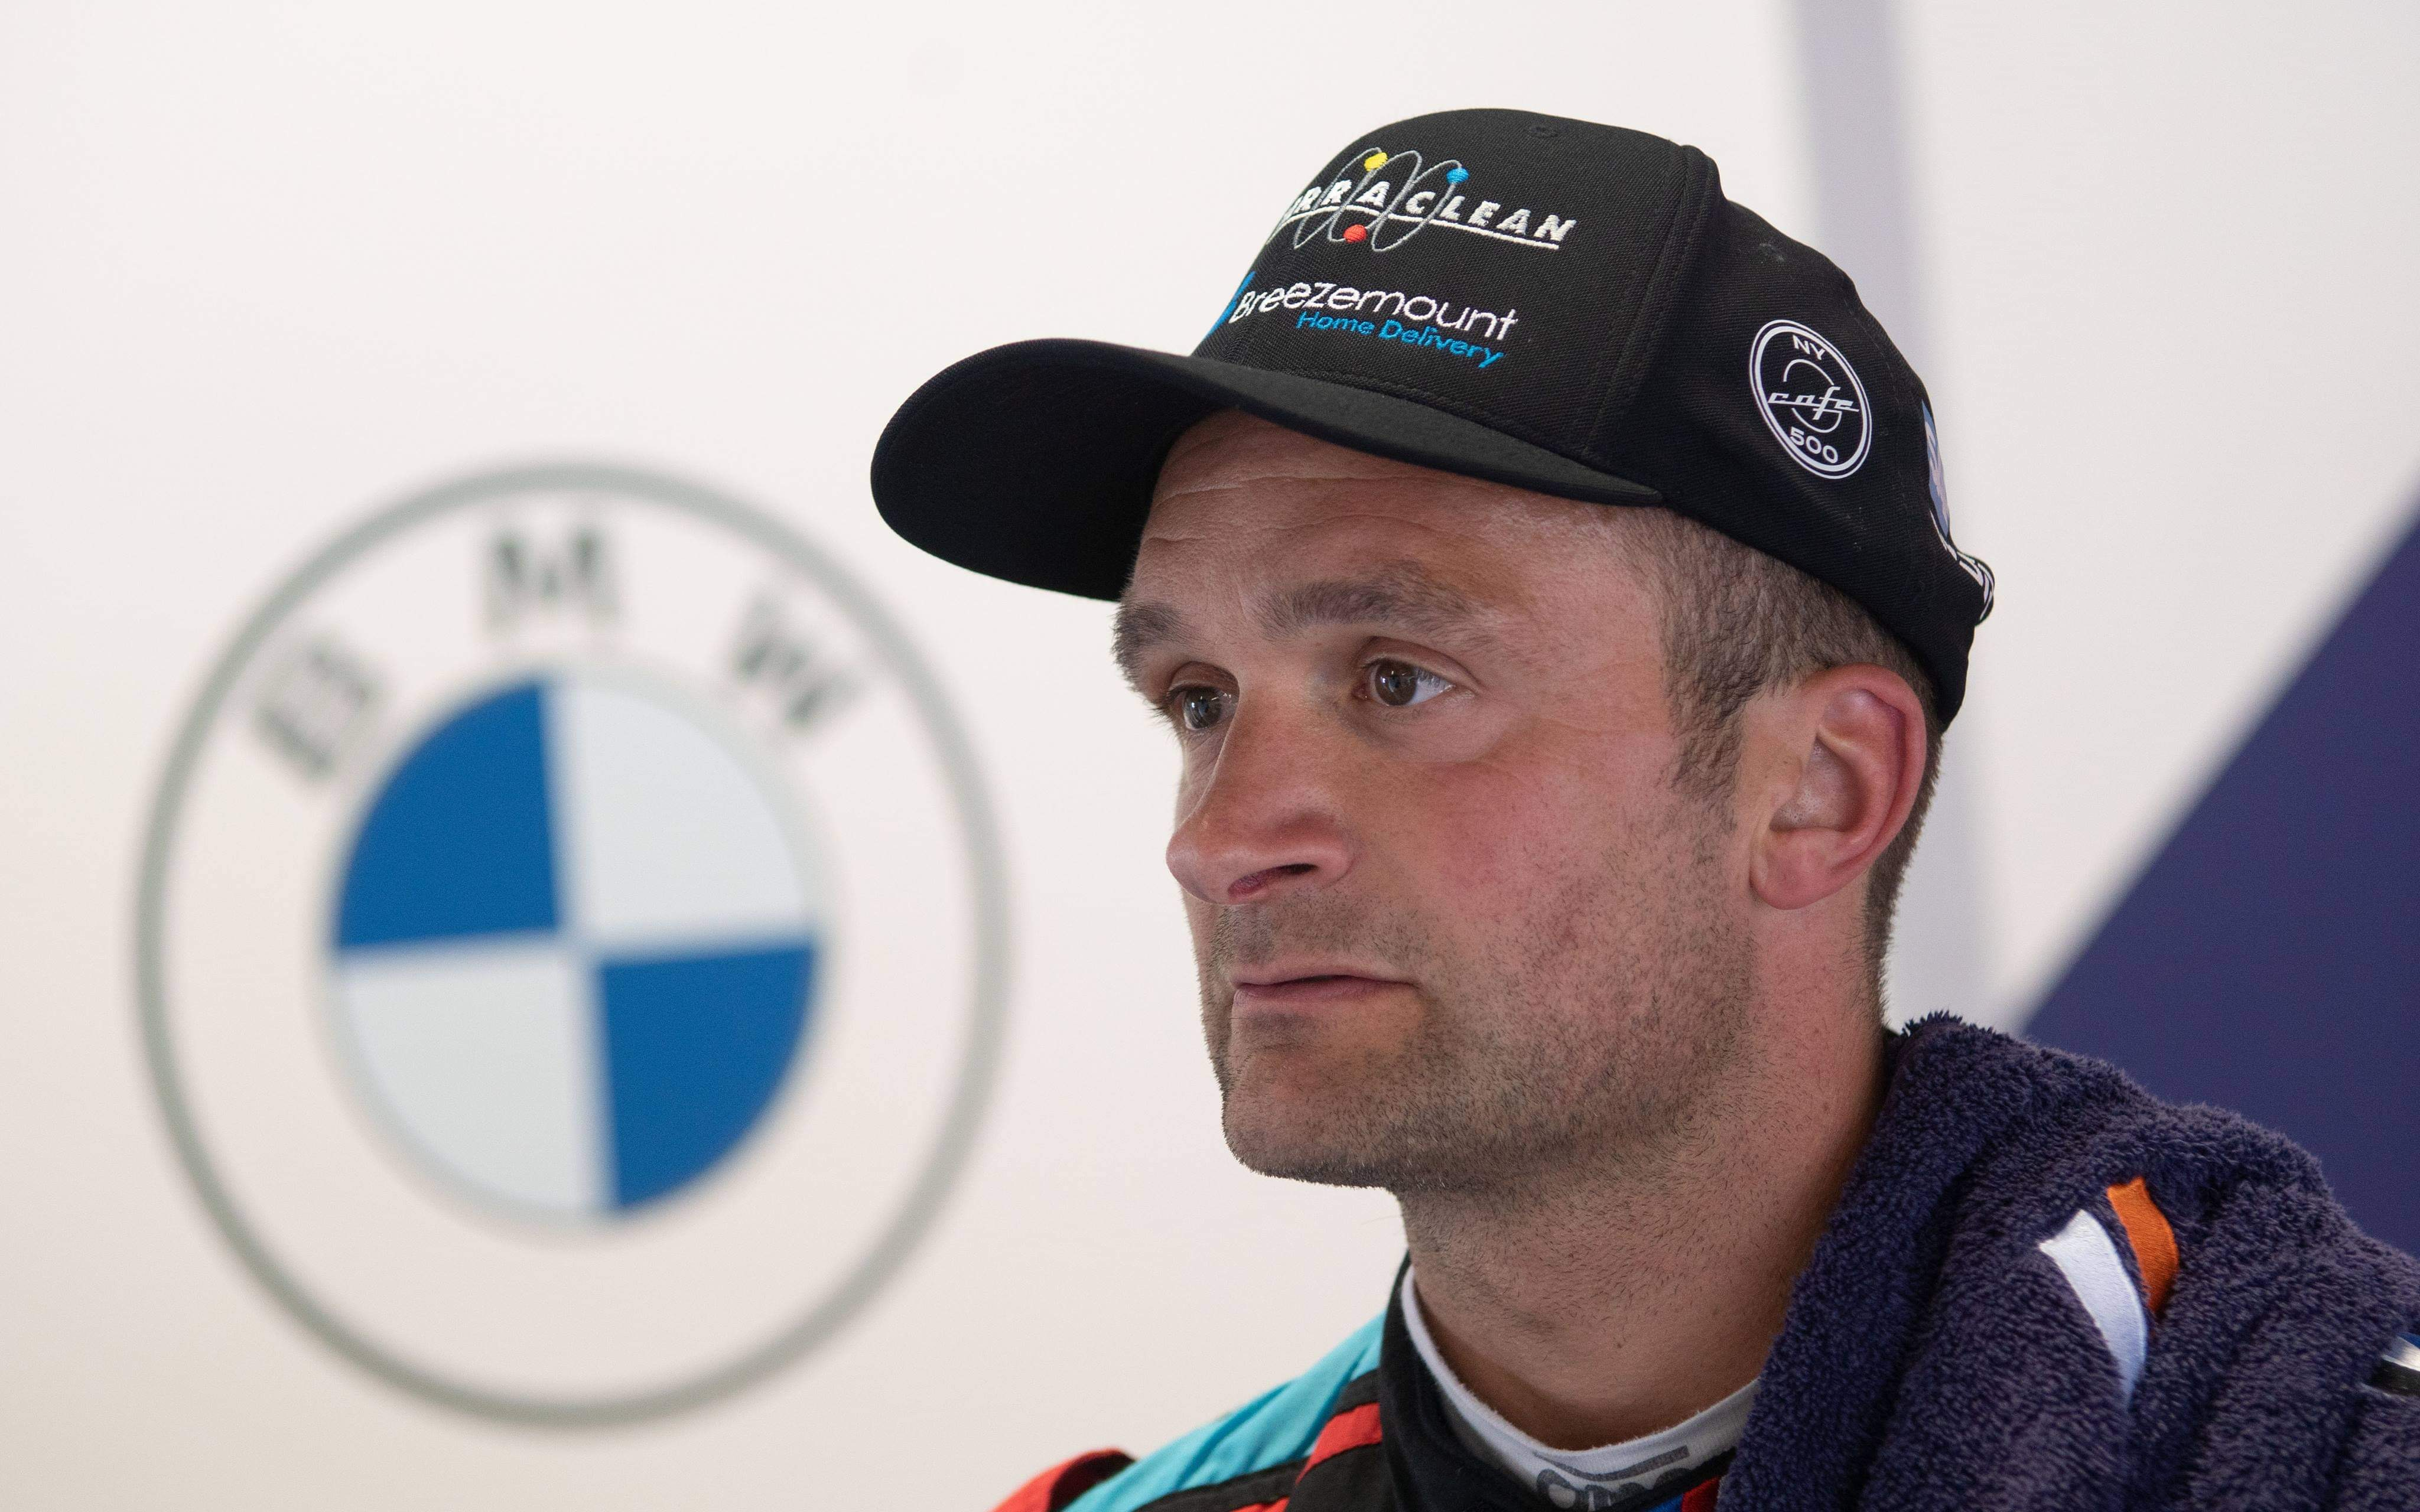 P9 FOR TURKINGTON IN OULTON PARK QUALIFYING